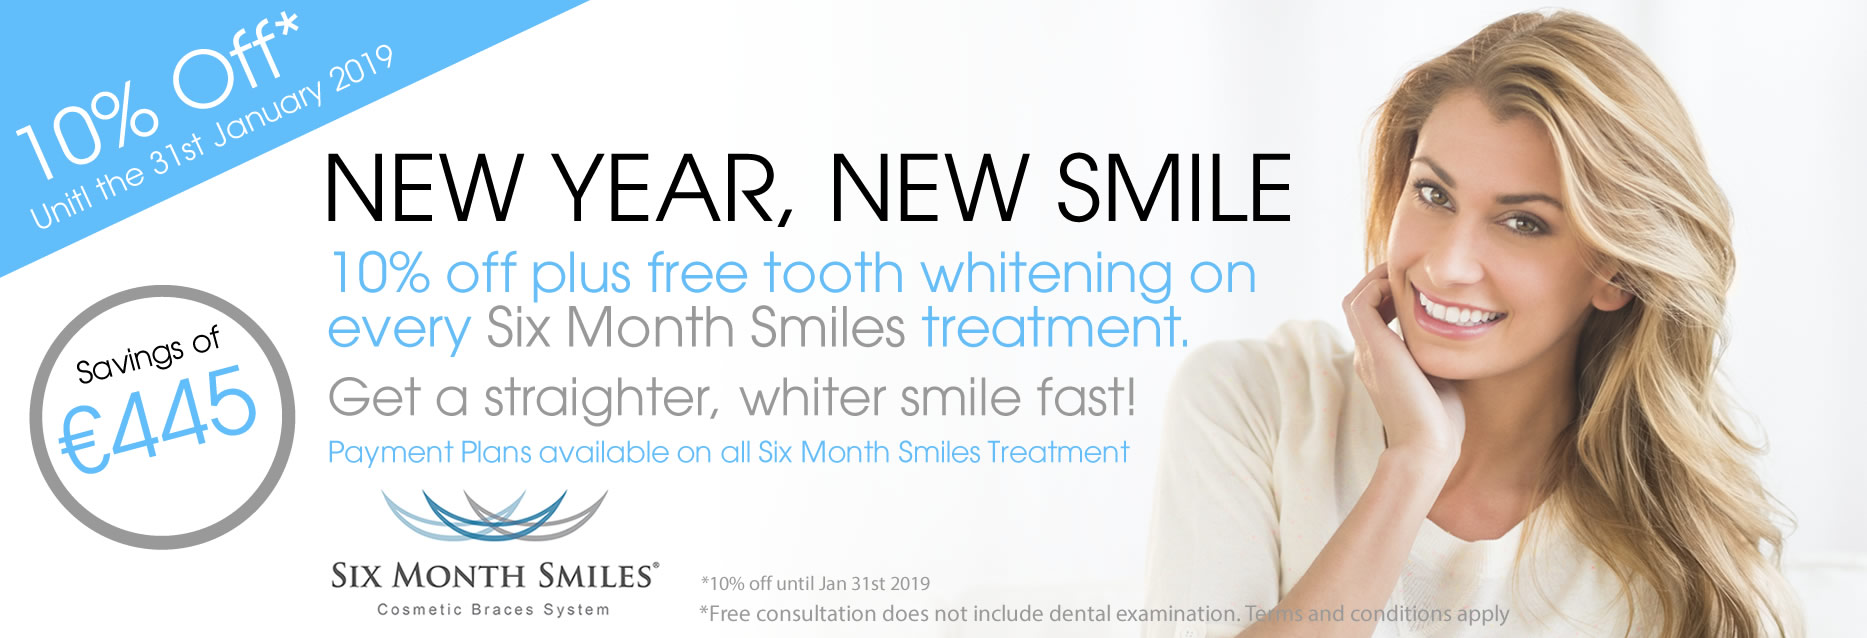 Airport Dental January Offer